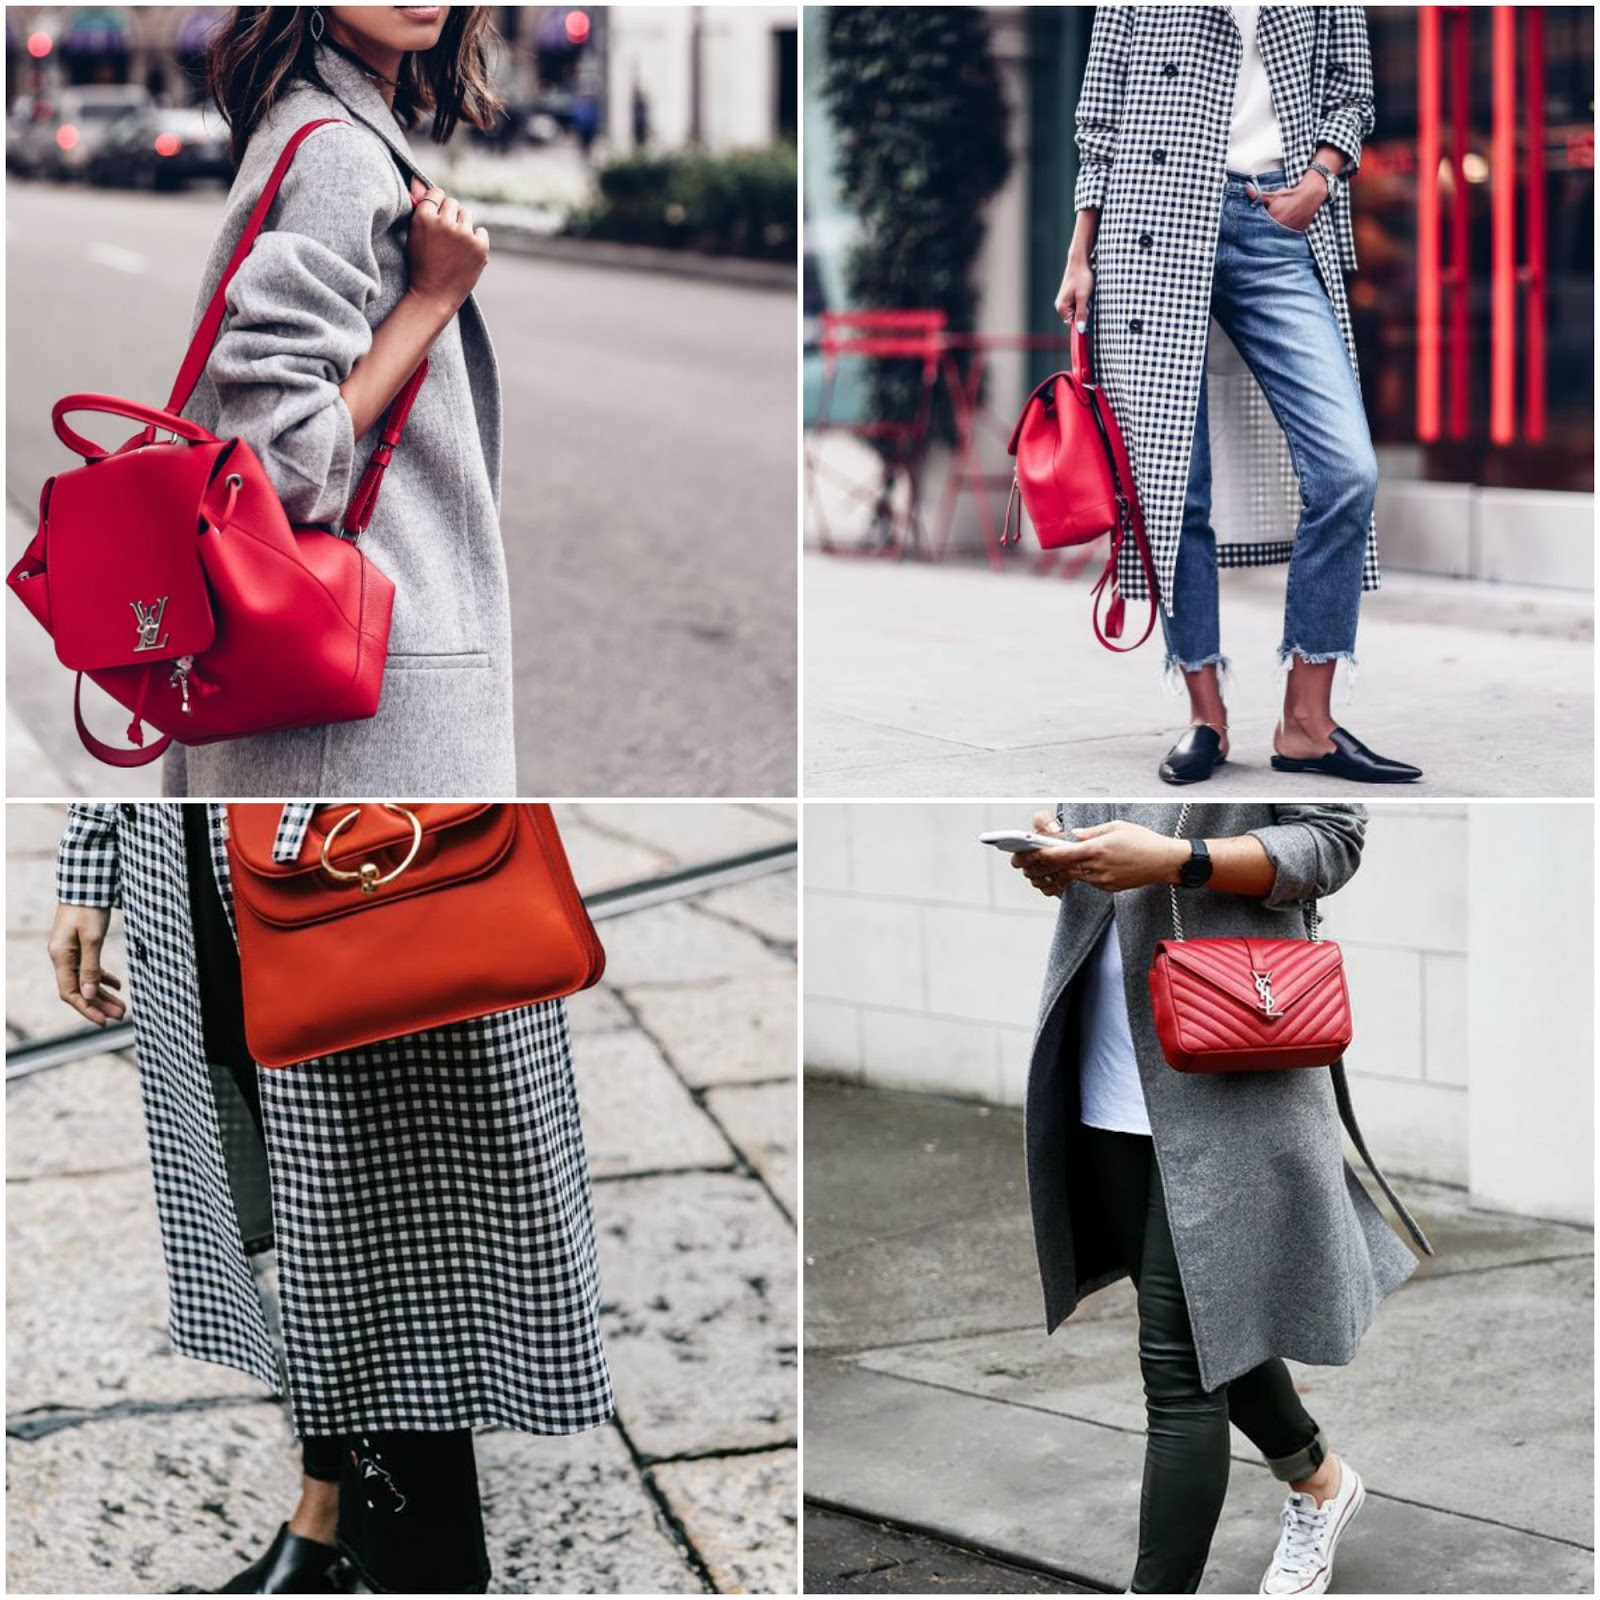 How To Style Red Bags